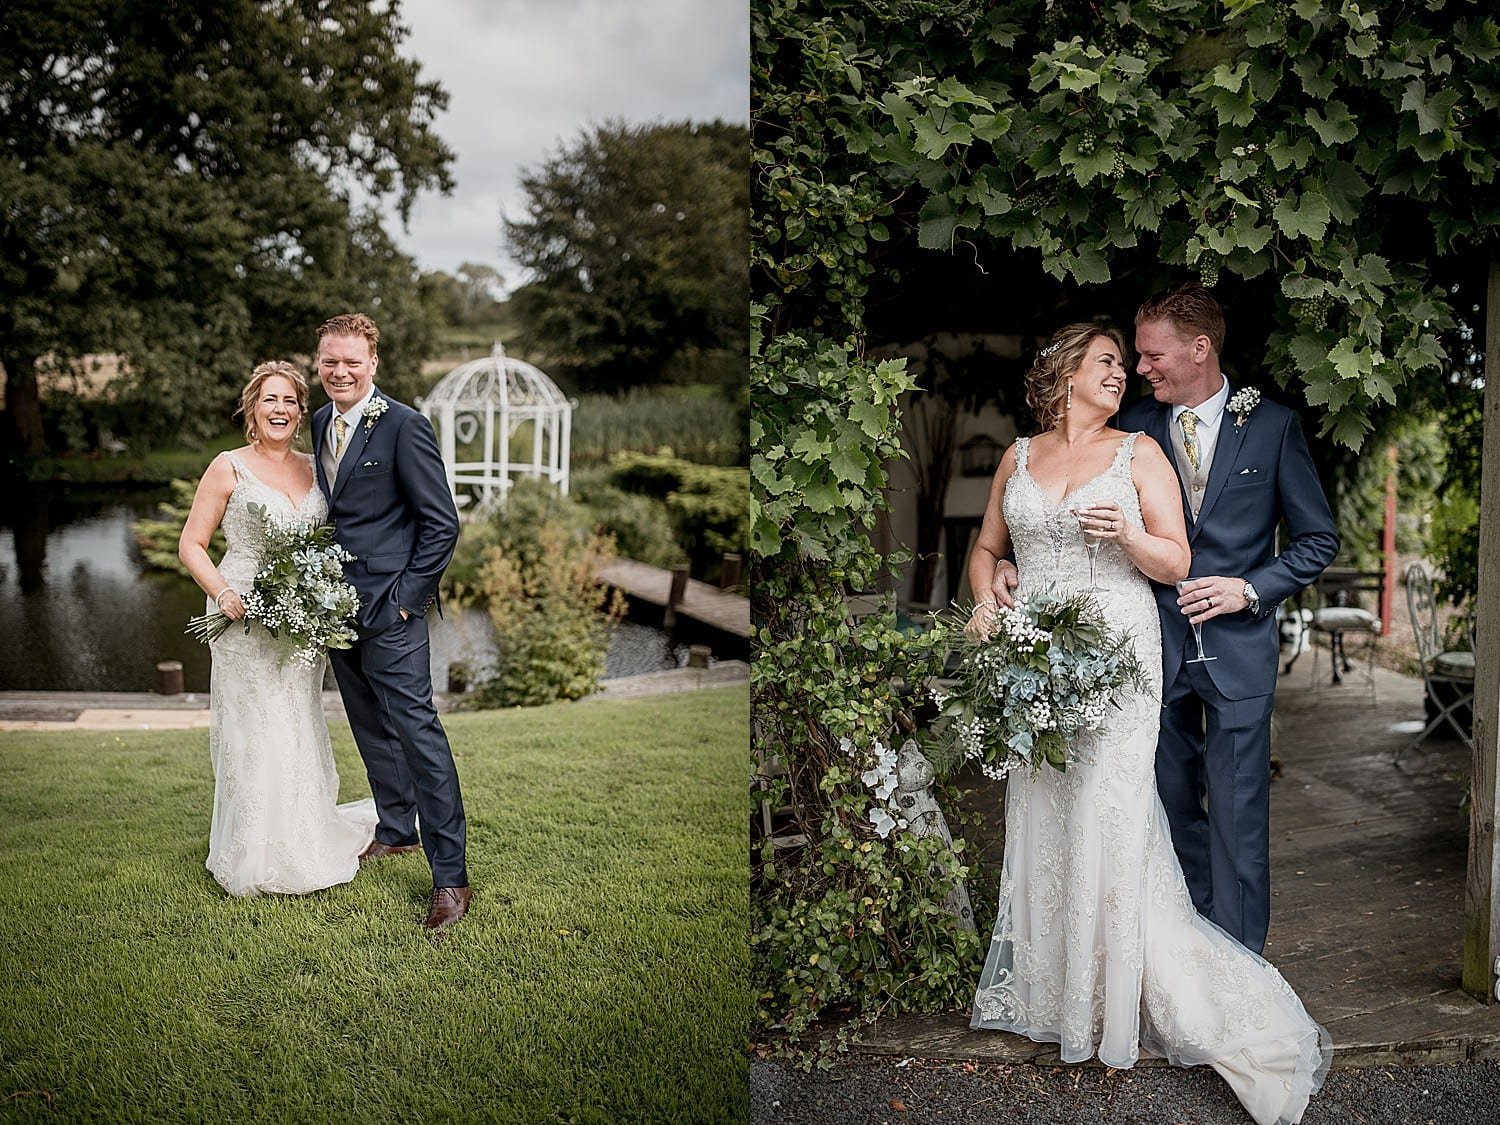 buddileigh farm wedding photographer